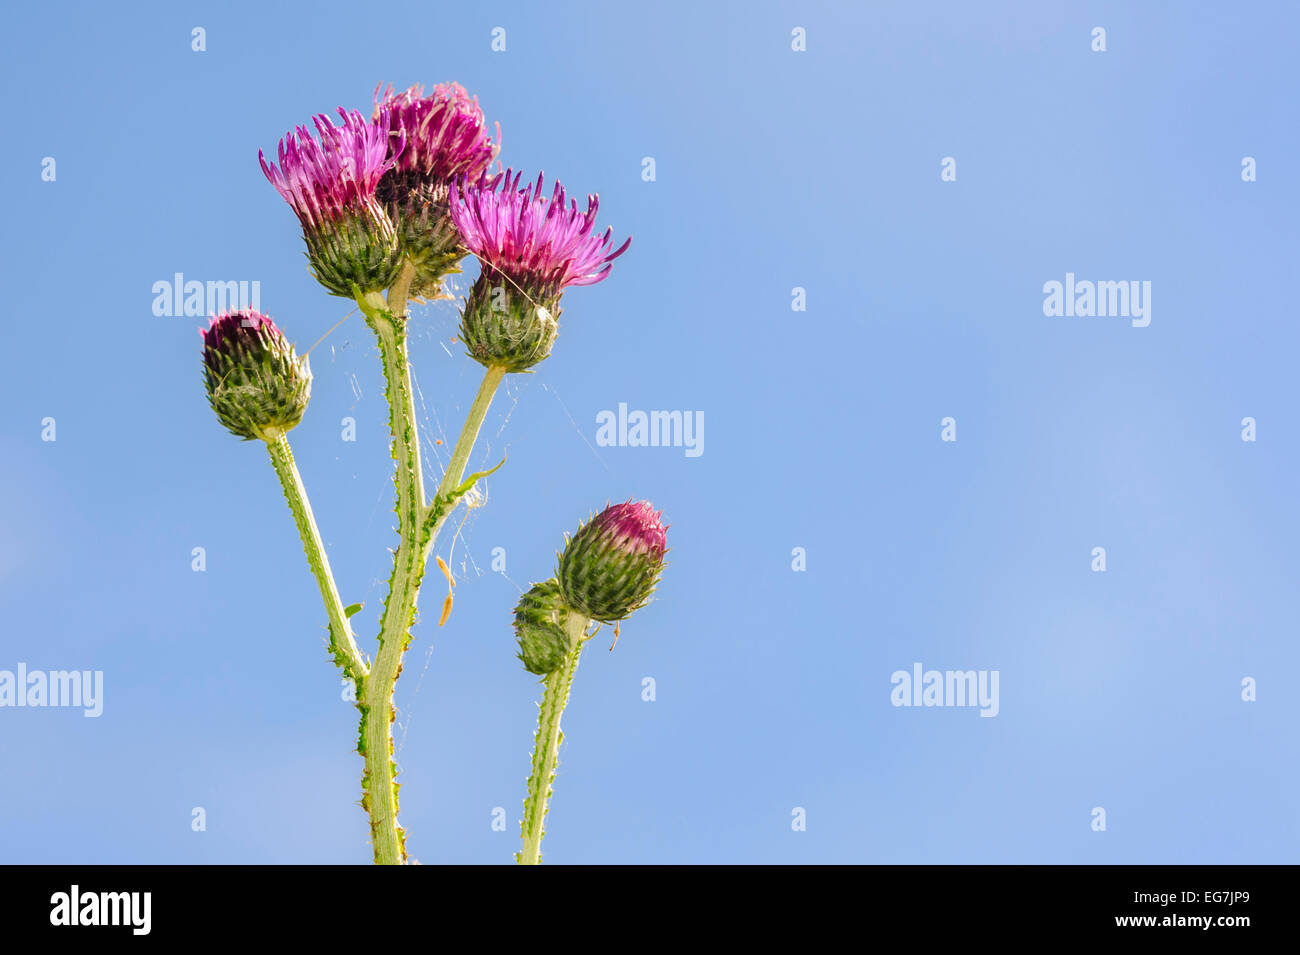 Purple thistle (Carduus) flower, blue sky in background. Stock Photo